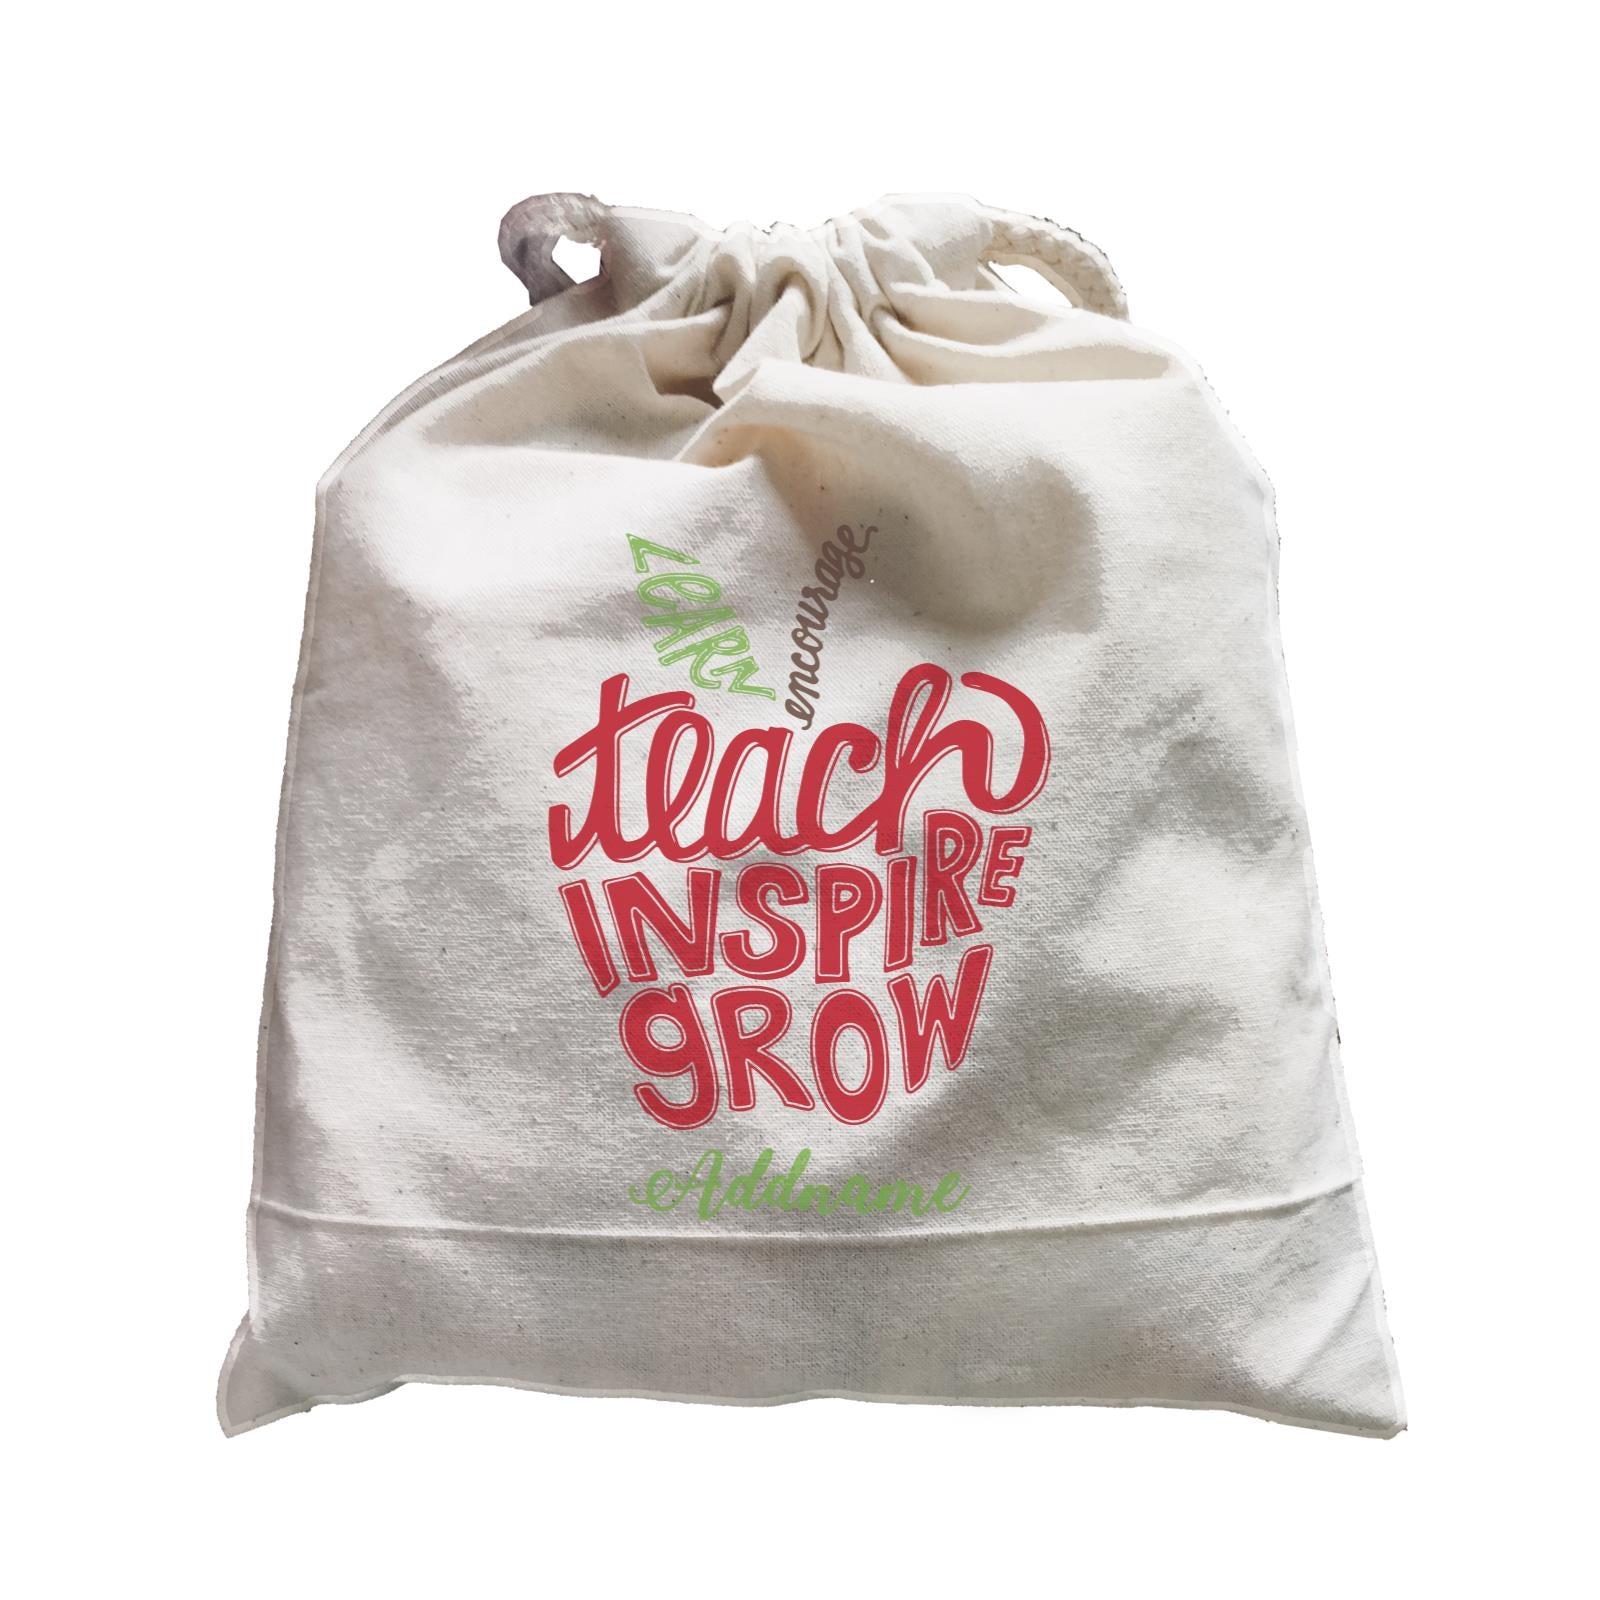 Teacher Apple Learn Encourage Teacher Inspire Grow Addname Satchel